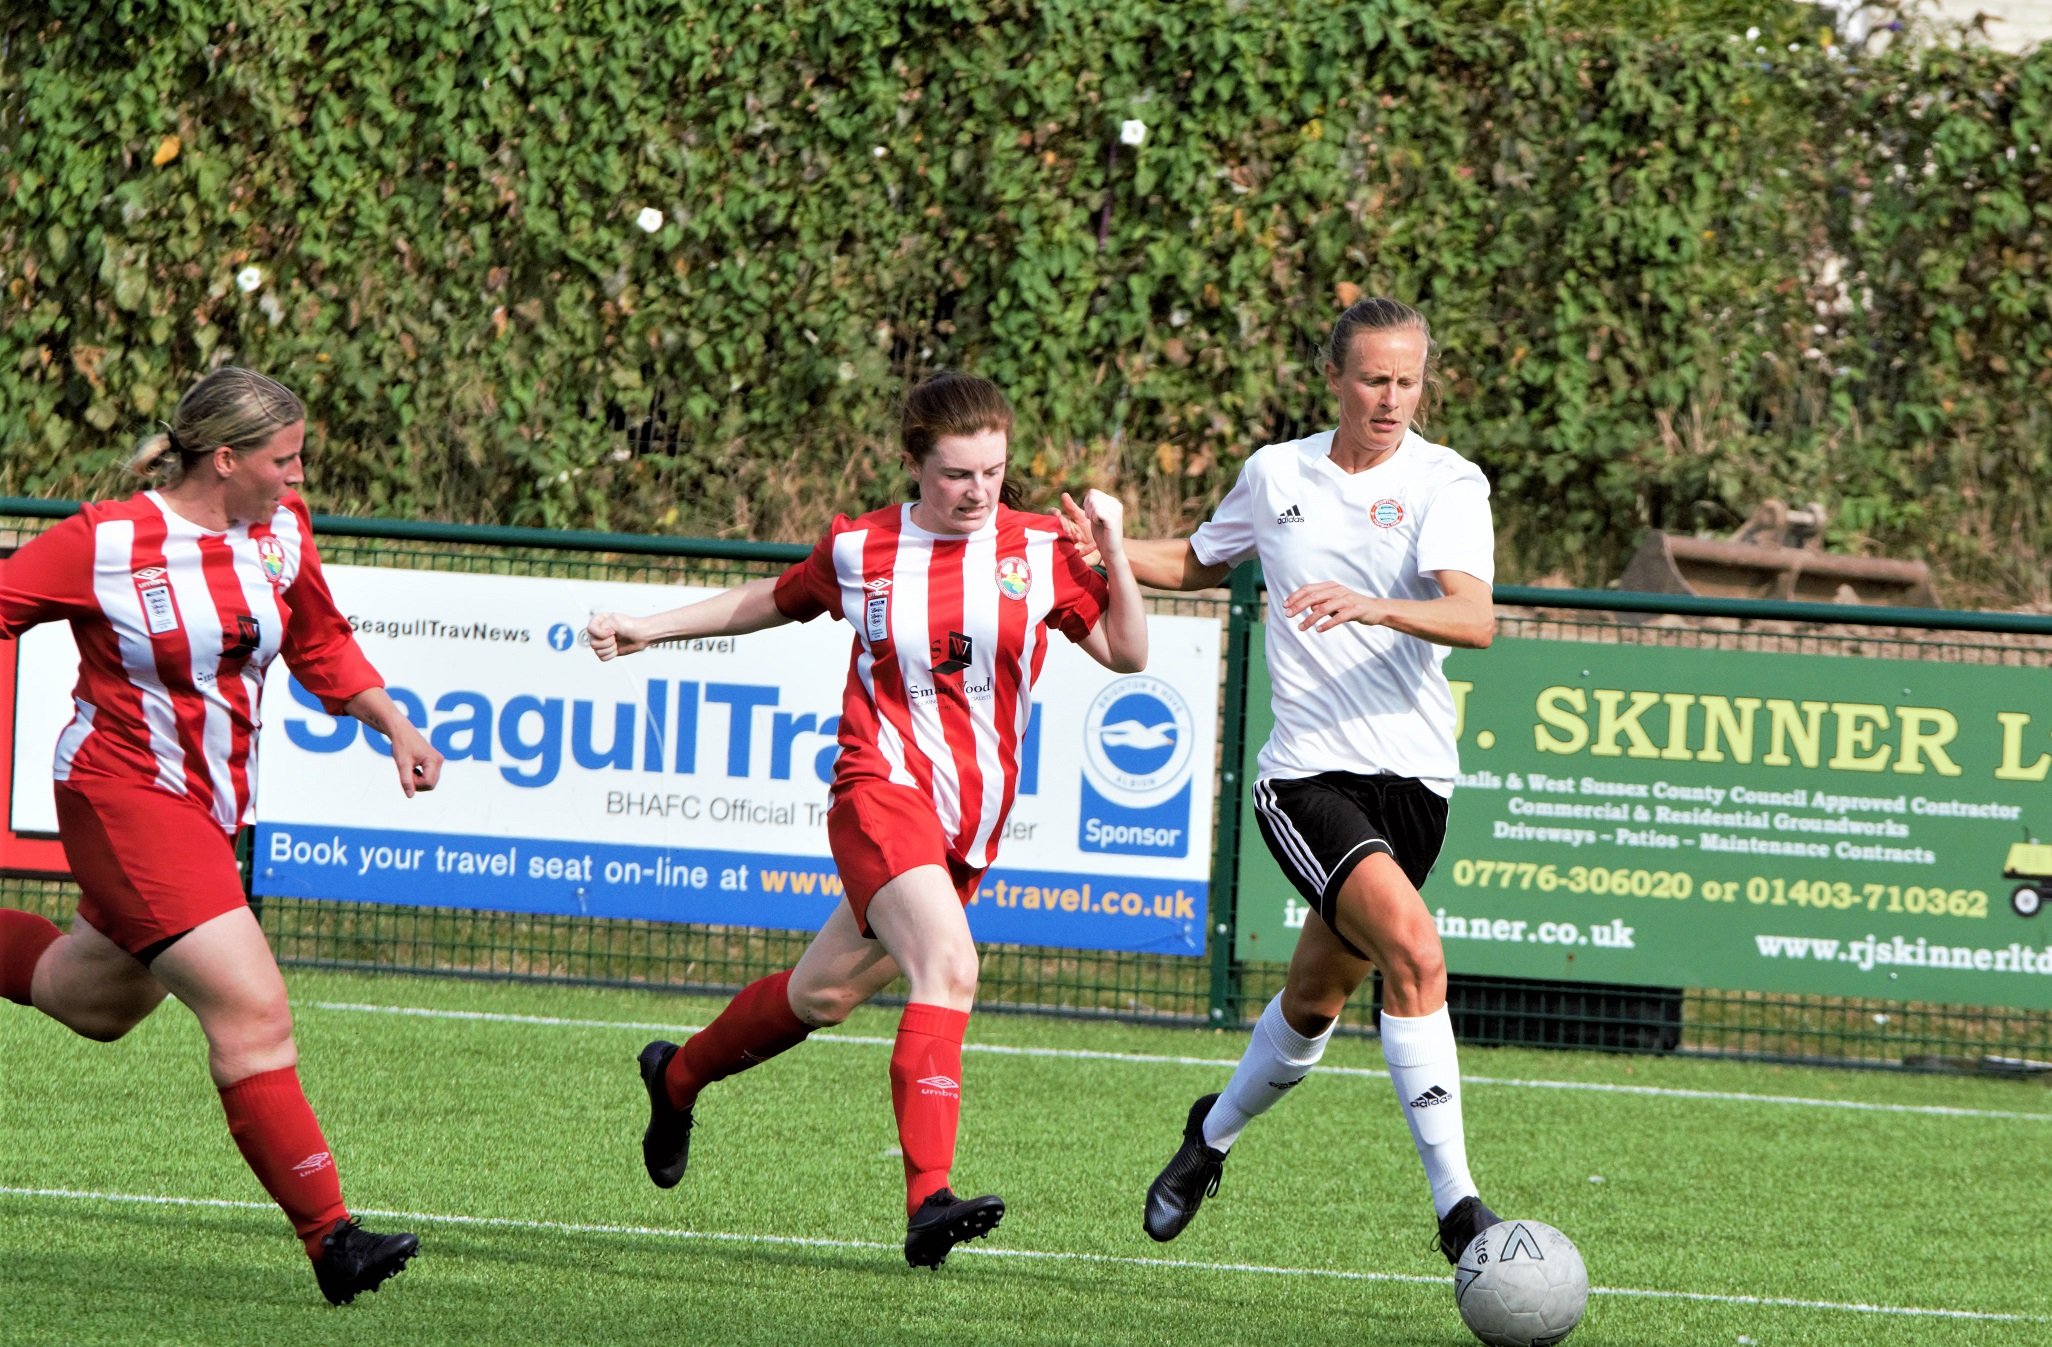 Read the full article - Reds hit eight to sink Steyning in FA Cup rout